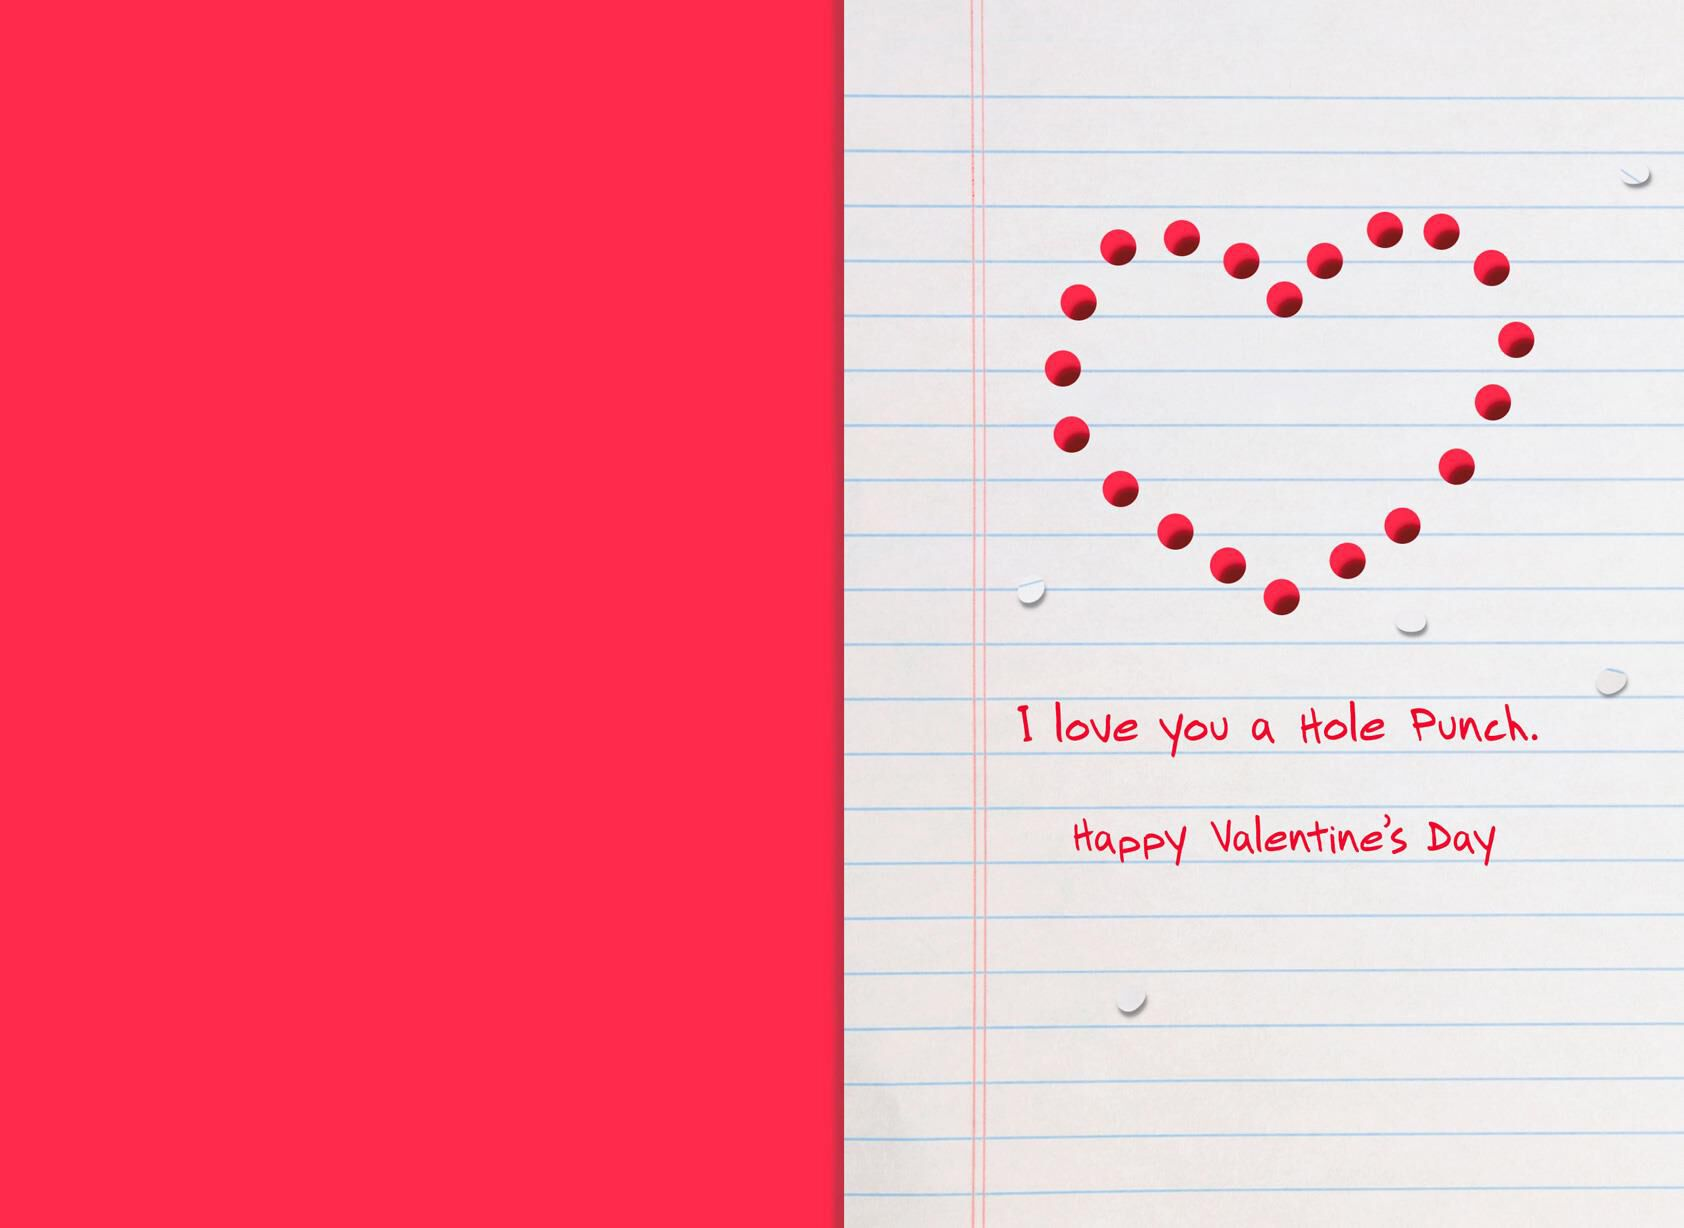 Love You A Hole Punch Funny Valentineu0027s Day Card